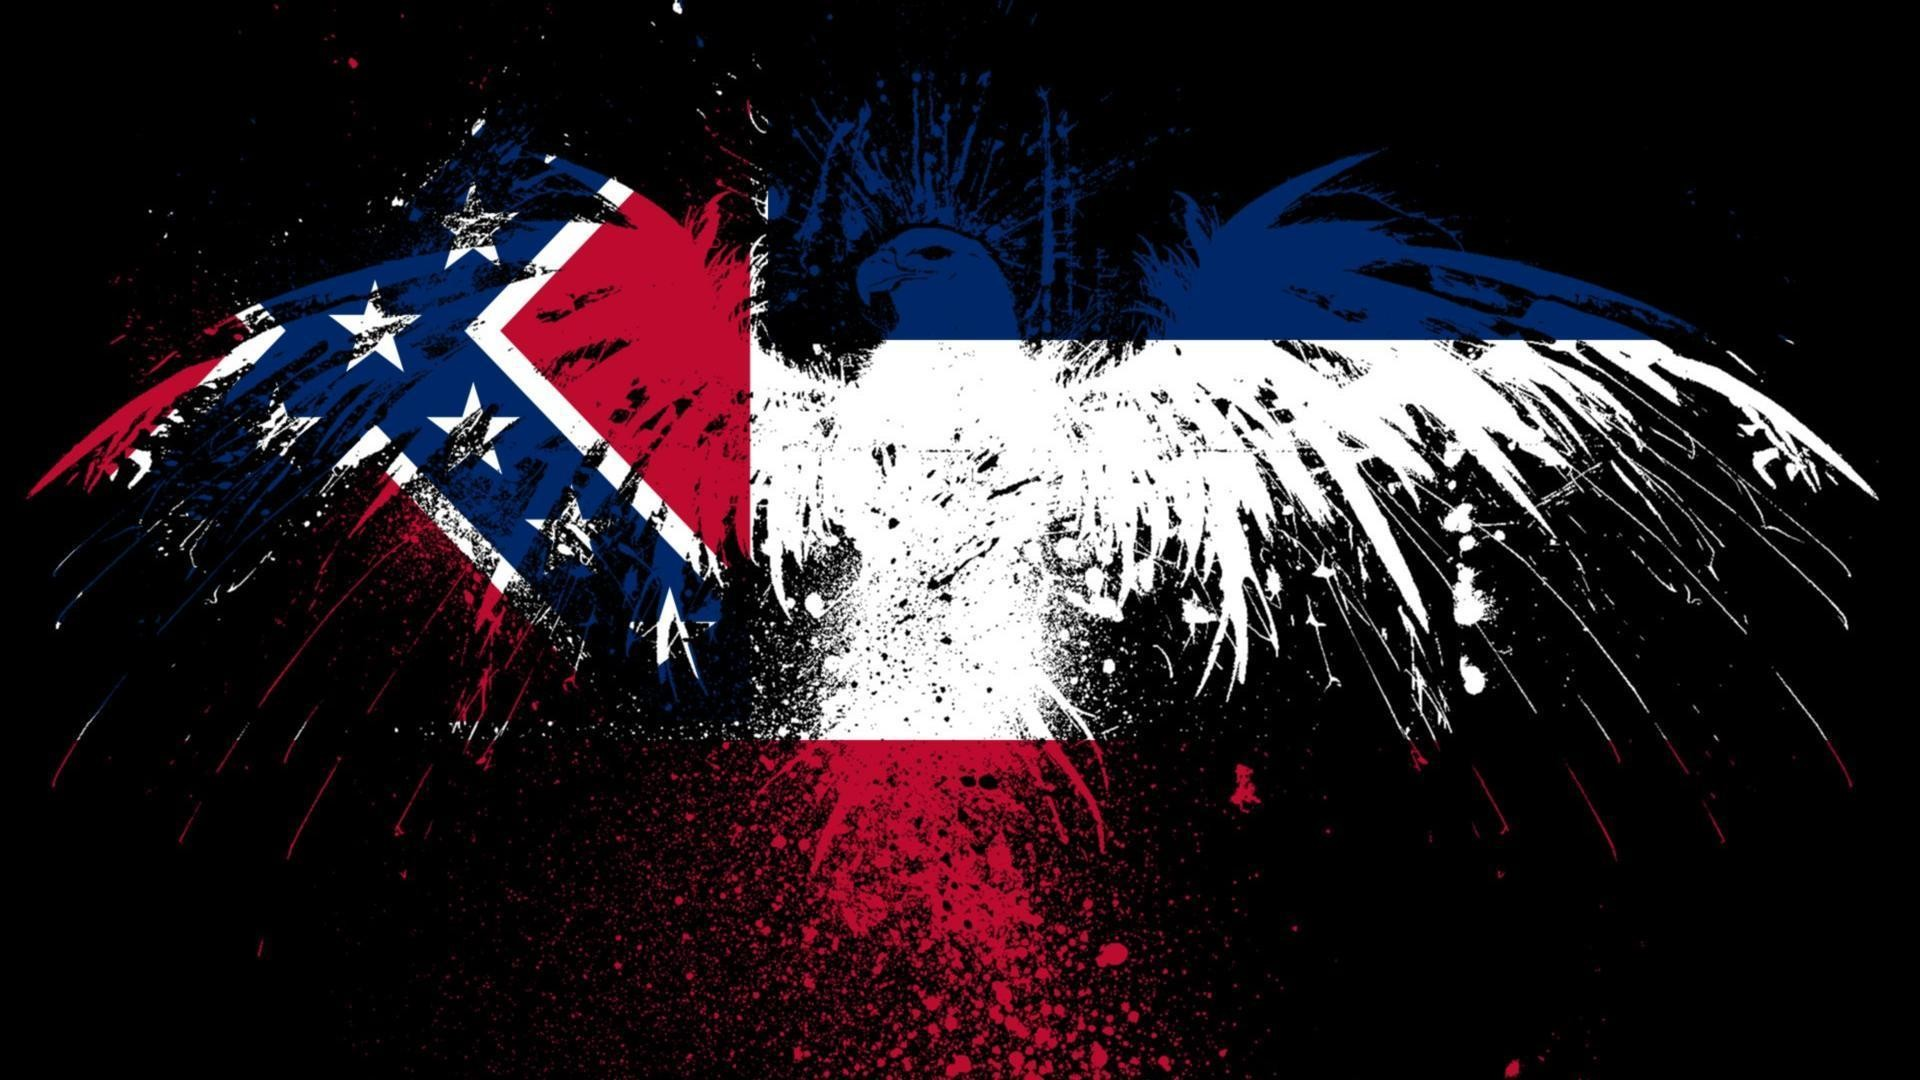 Confederate Flag Wallpaper Hd Redneck Wallpaper For Android 49 Images